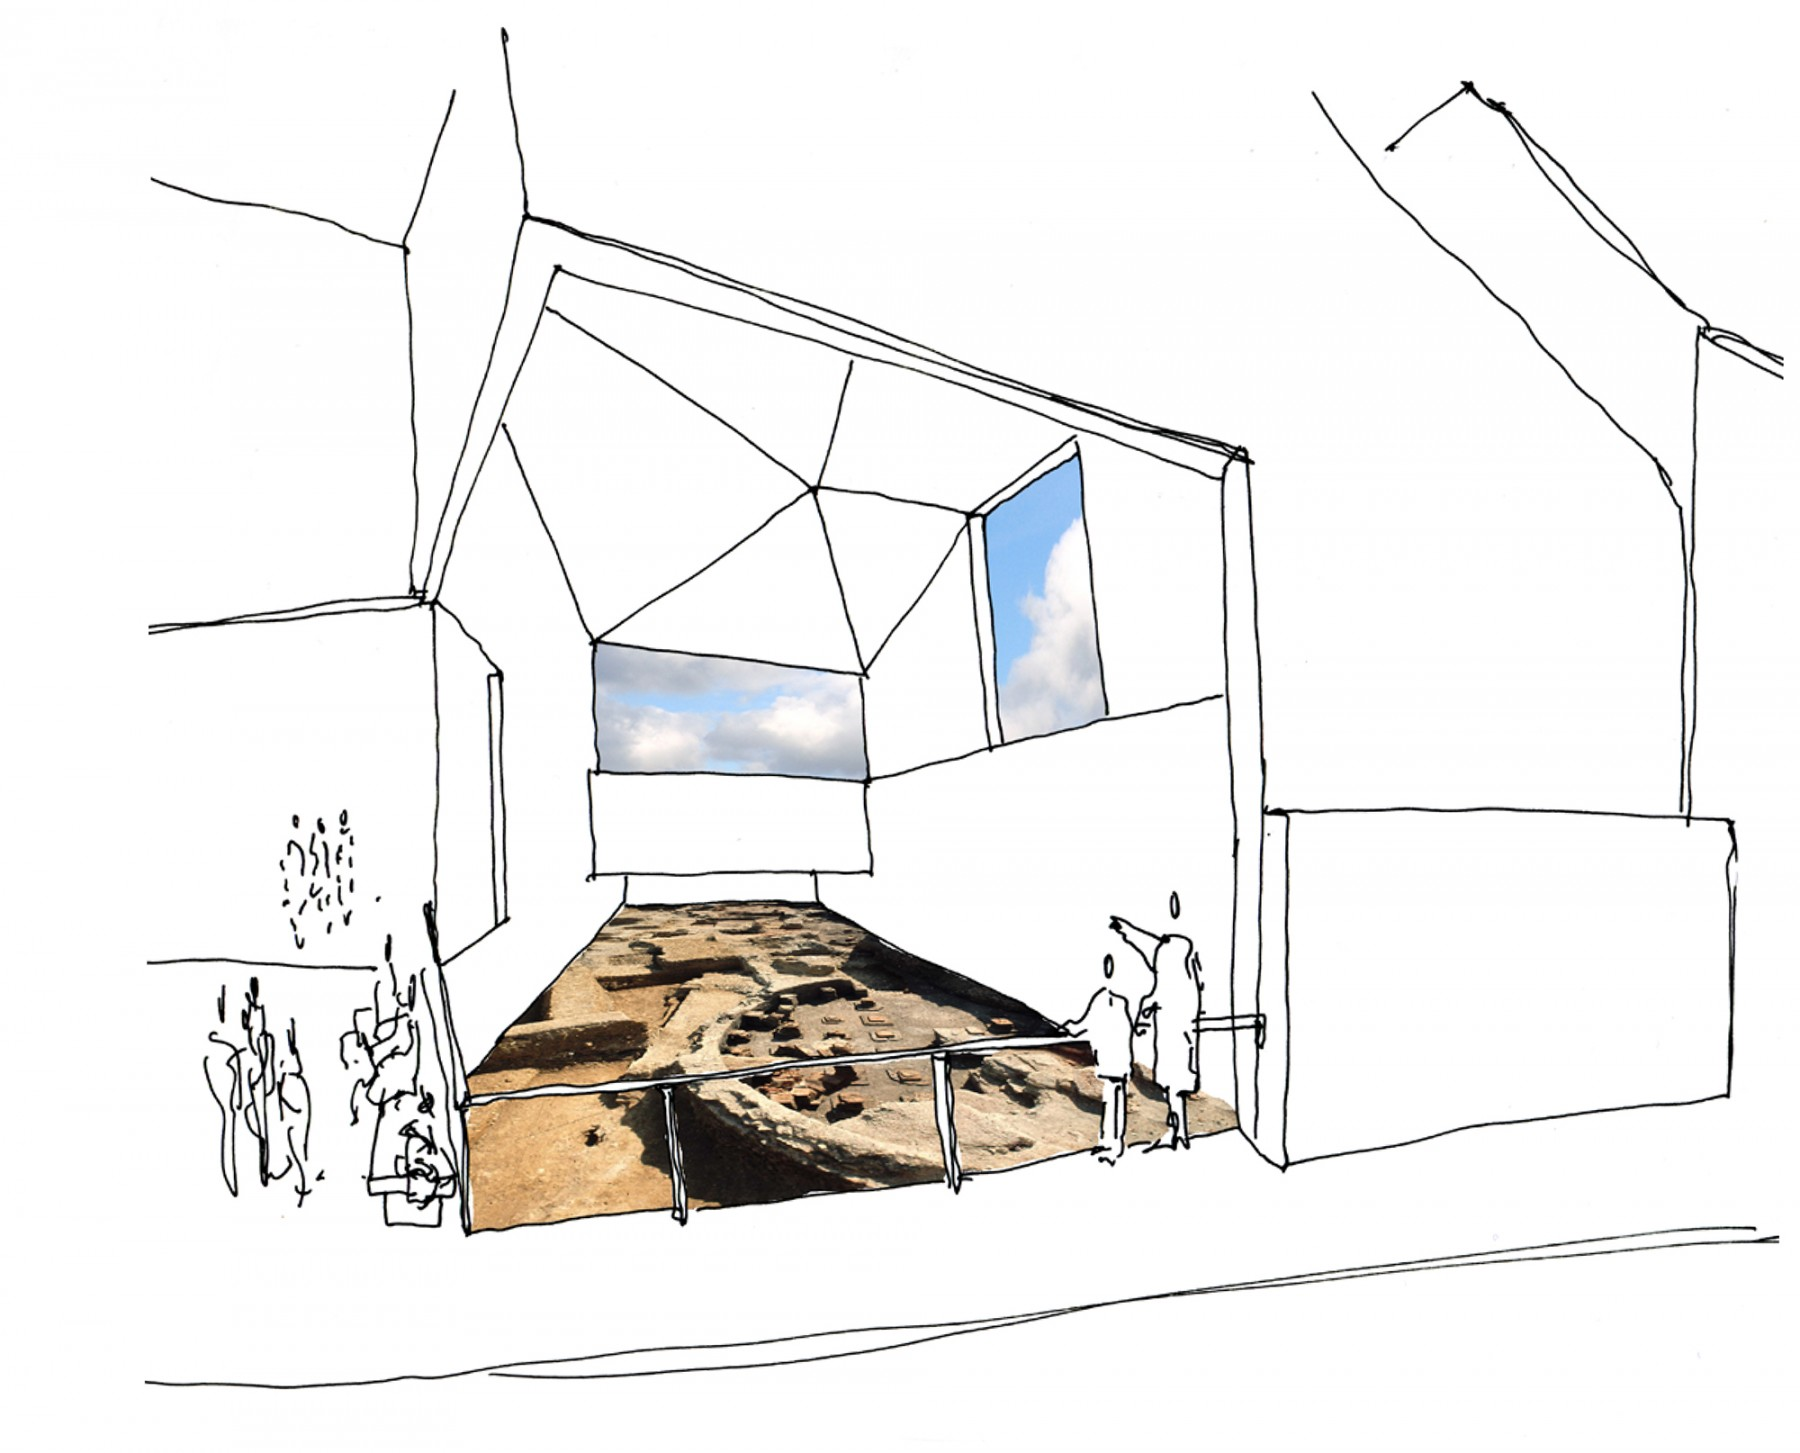 Chichester-district-museum-west-sussex-Roman-baths-competition-RIBA-Short-list-Jamie-Fobert-architects-5